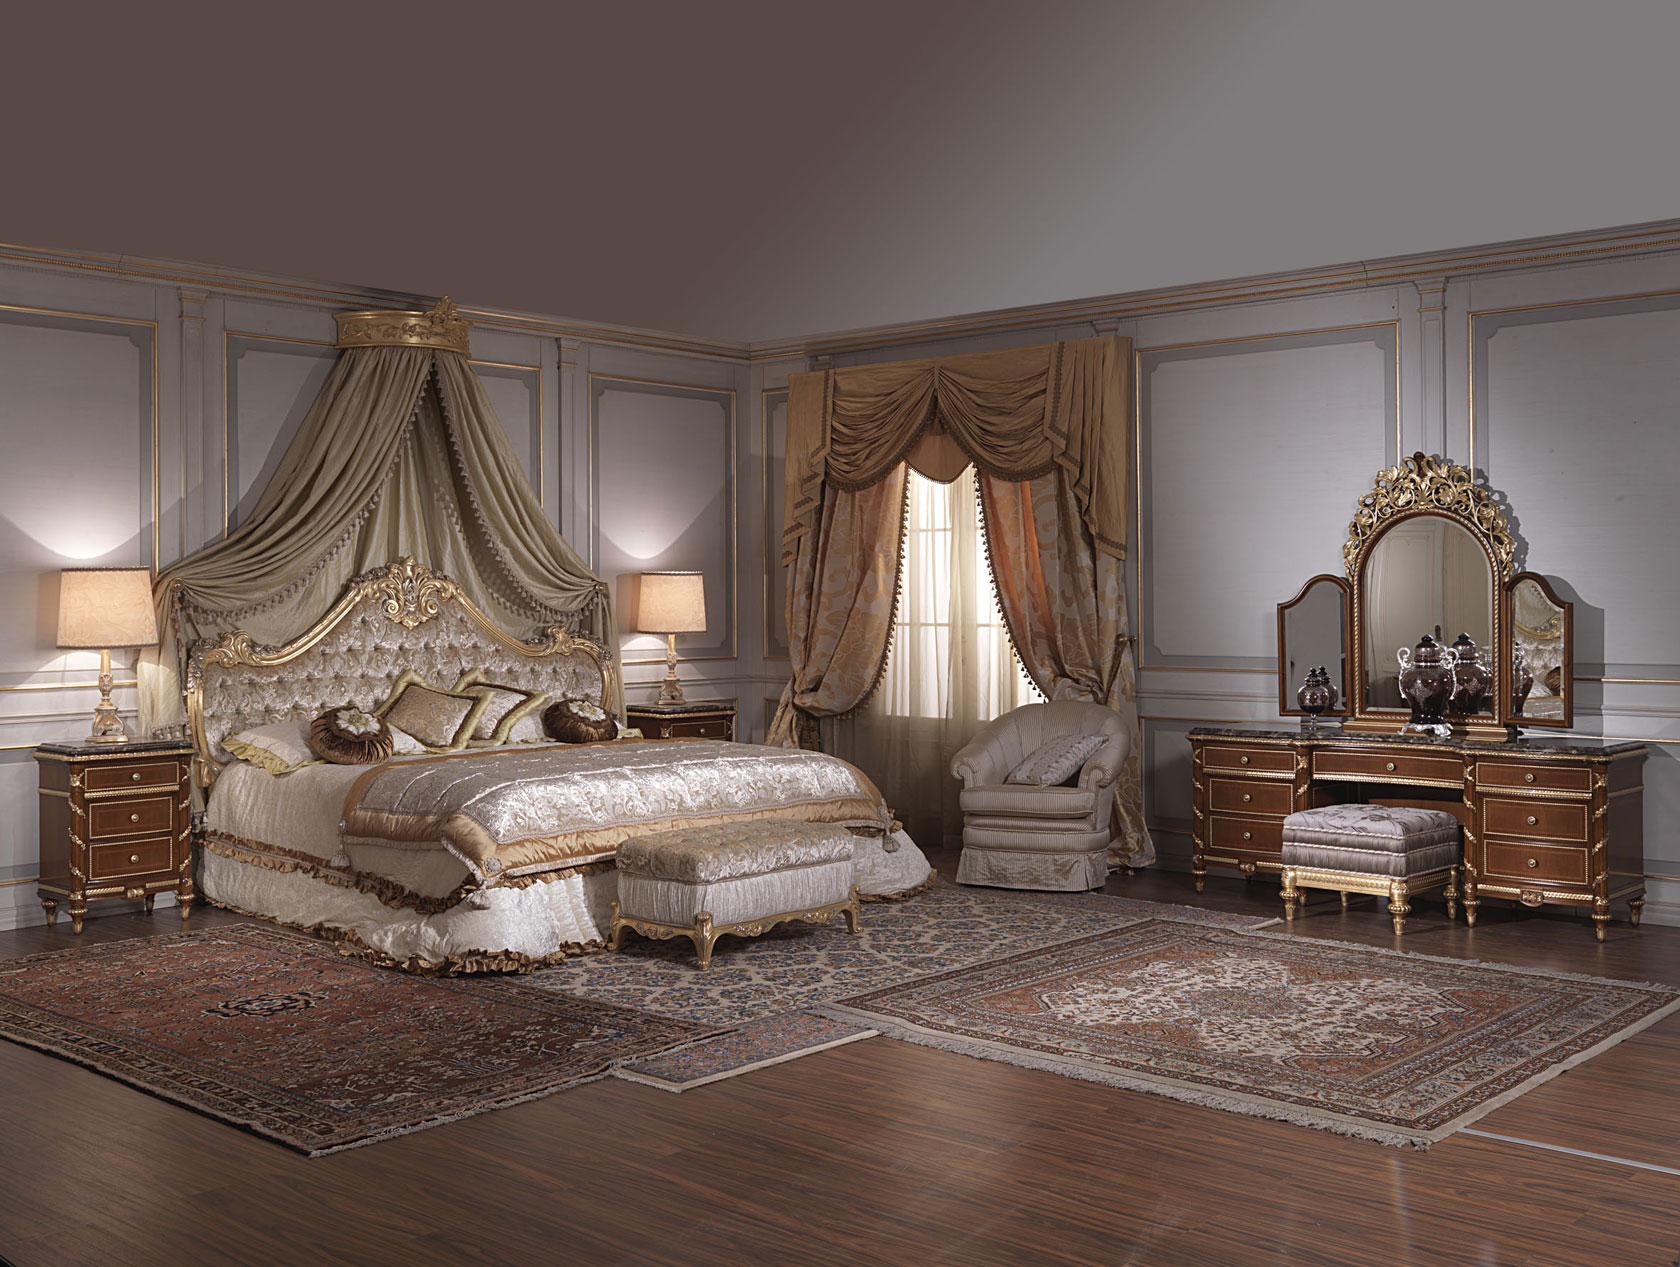 classic italian 18th century bedroom dressing table and. Black Bedroom Furniture Sets. Home Design Ideas